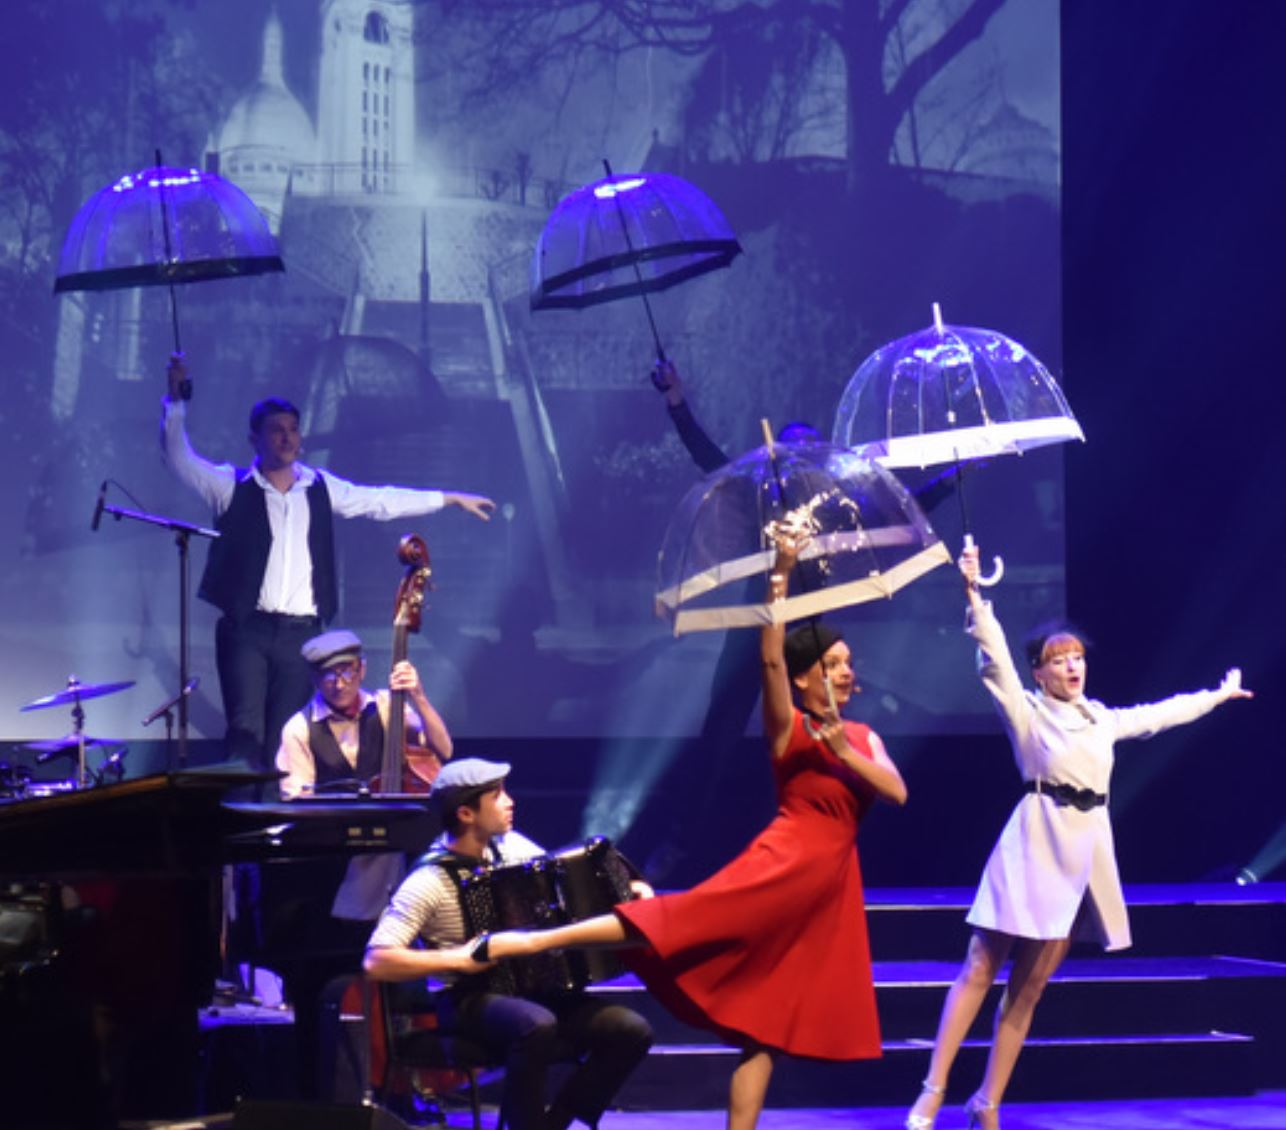 ParisWeek – Paris! Le Spectacle avec Anne Carrere